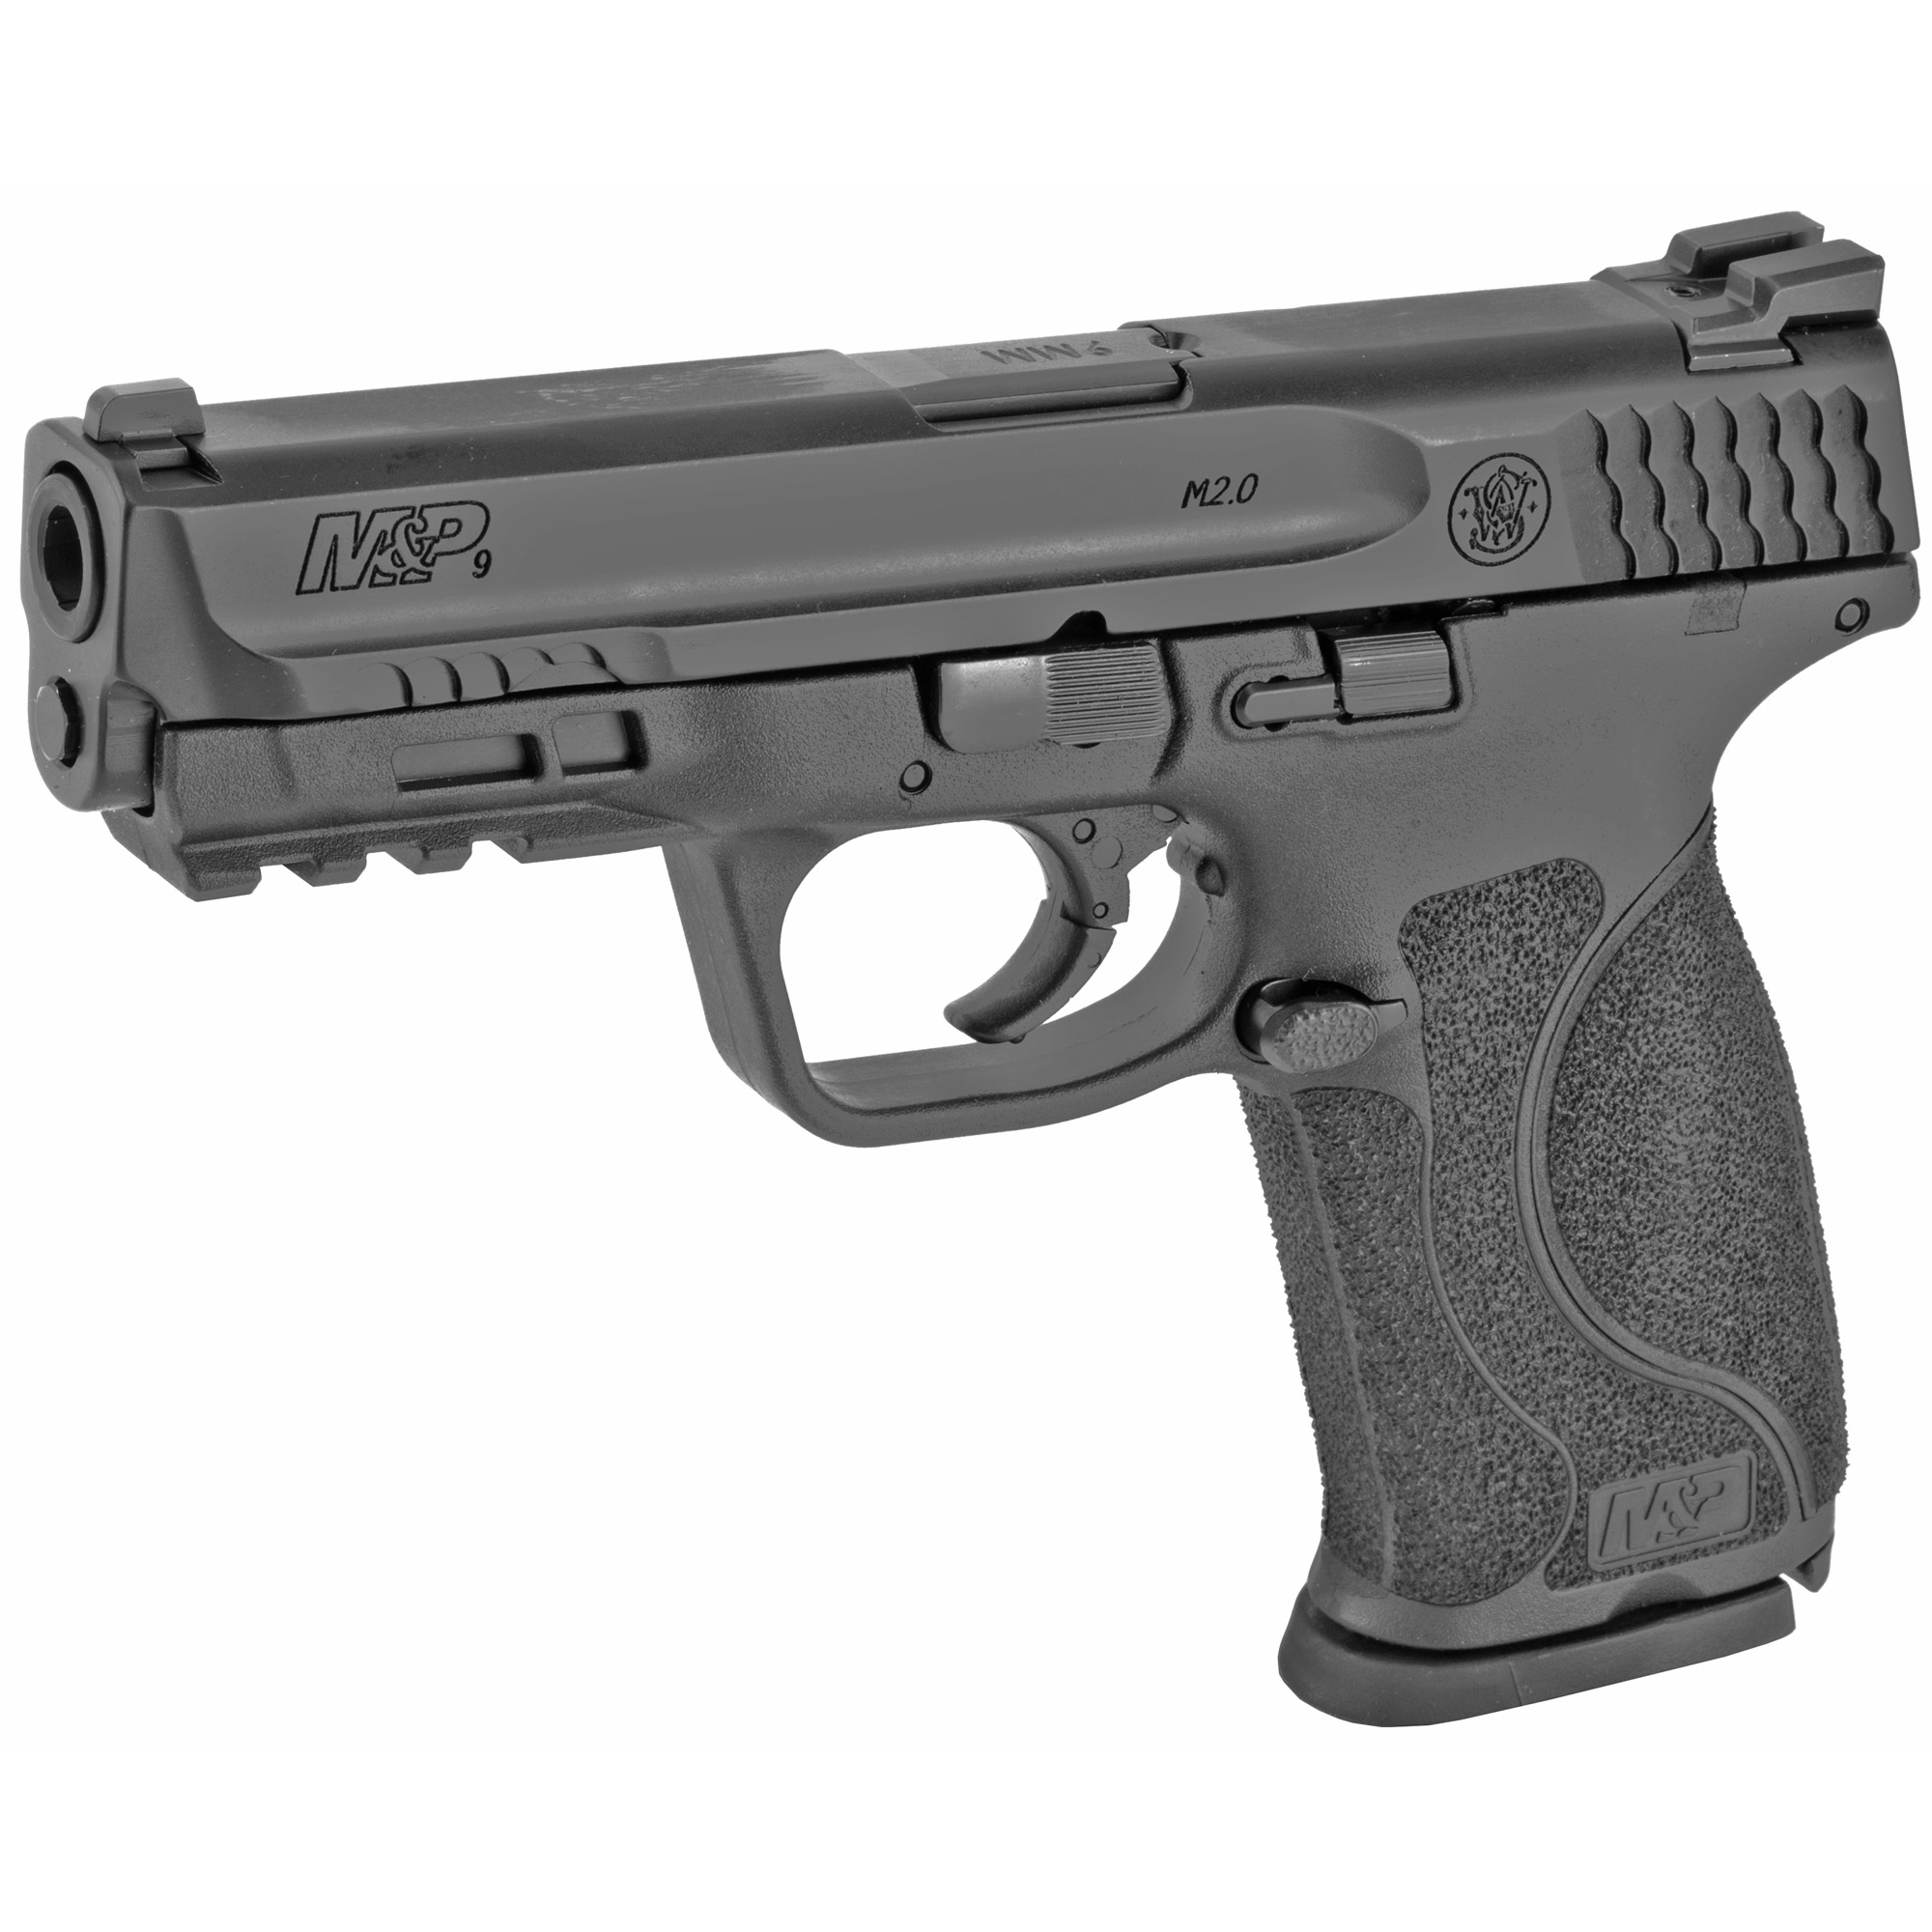 """Smith & Wesson M&P 2.0 Striker Fired 4.25"""" 9mm 10rd Fixed Sights - Black-img-2"""